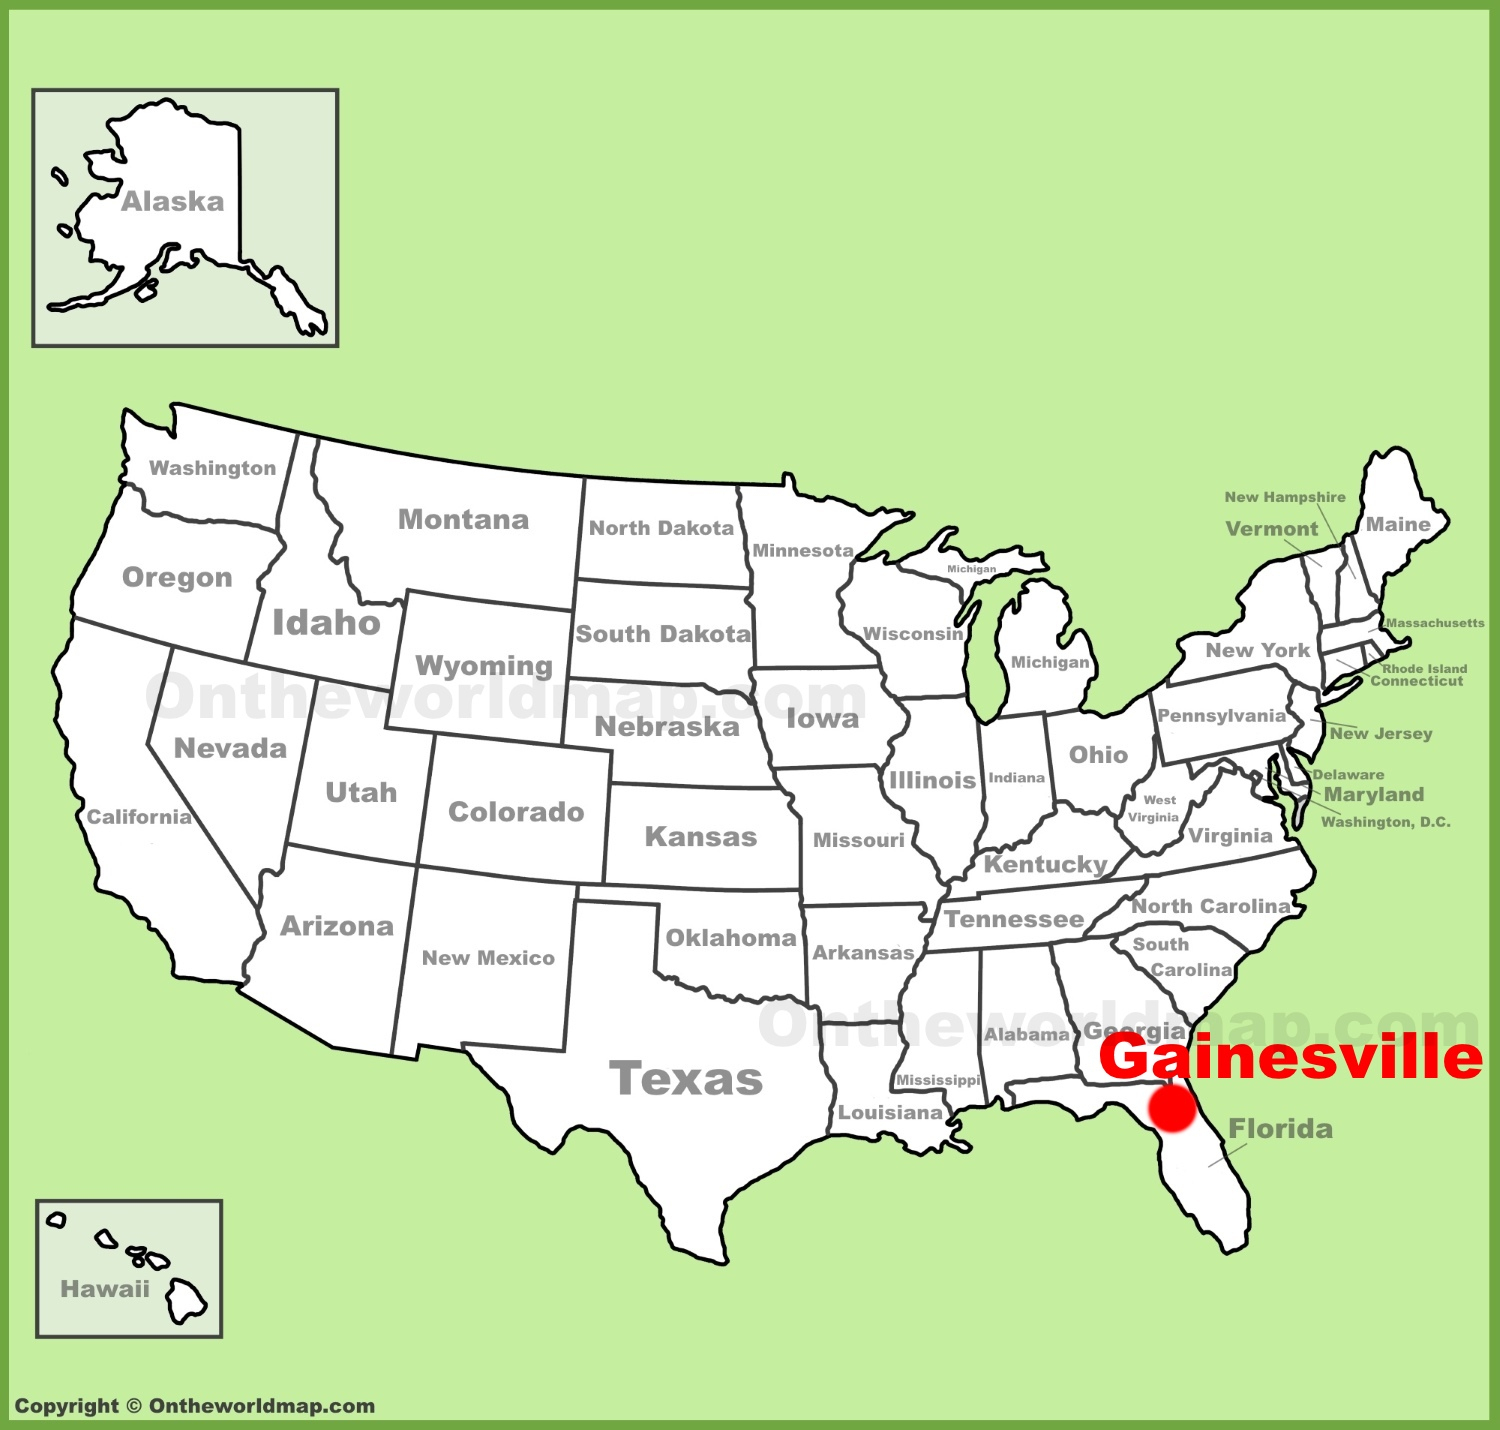 Gainesville Location On The U.s. Map - Map Of Gainesville Florida Area